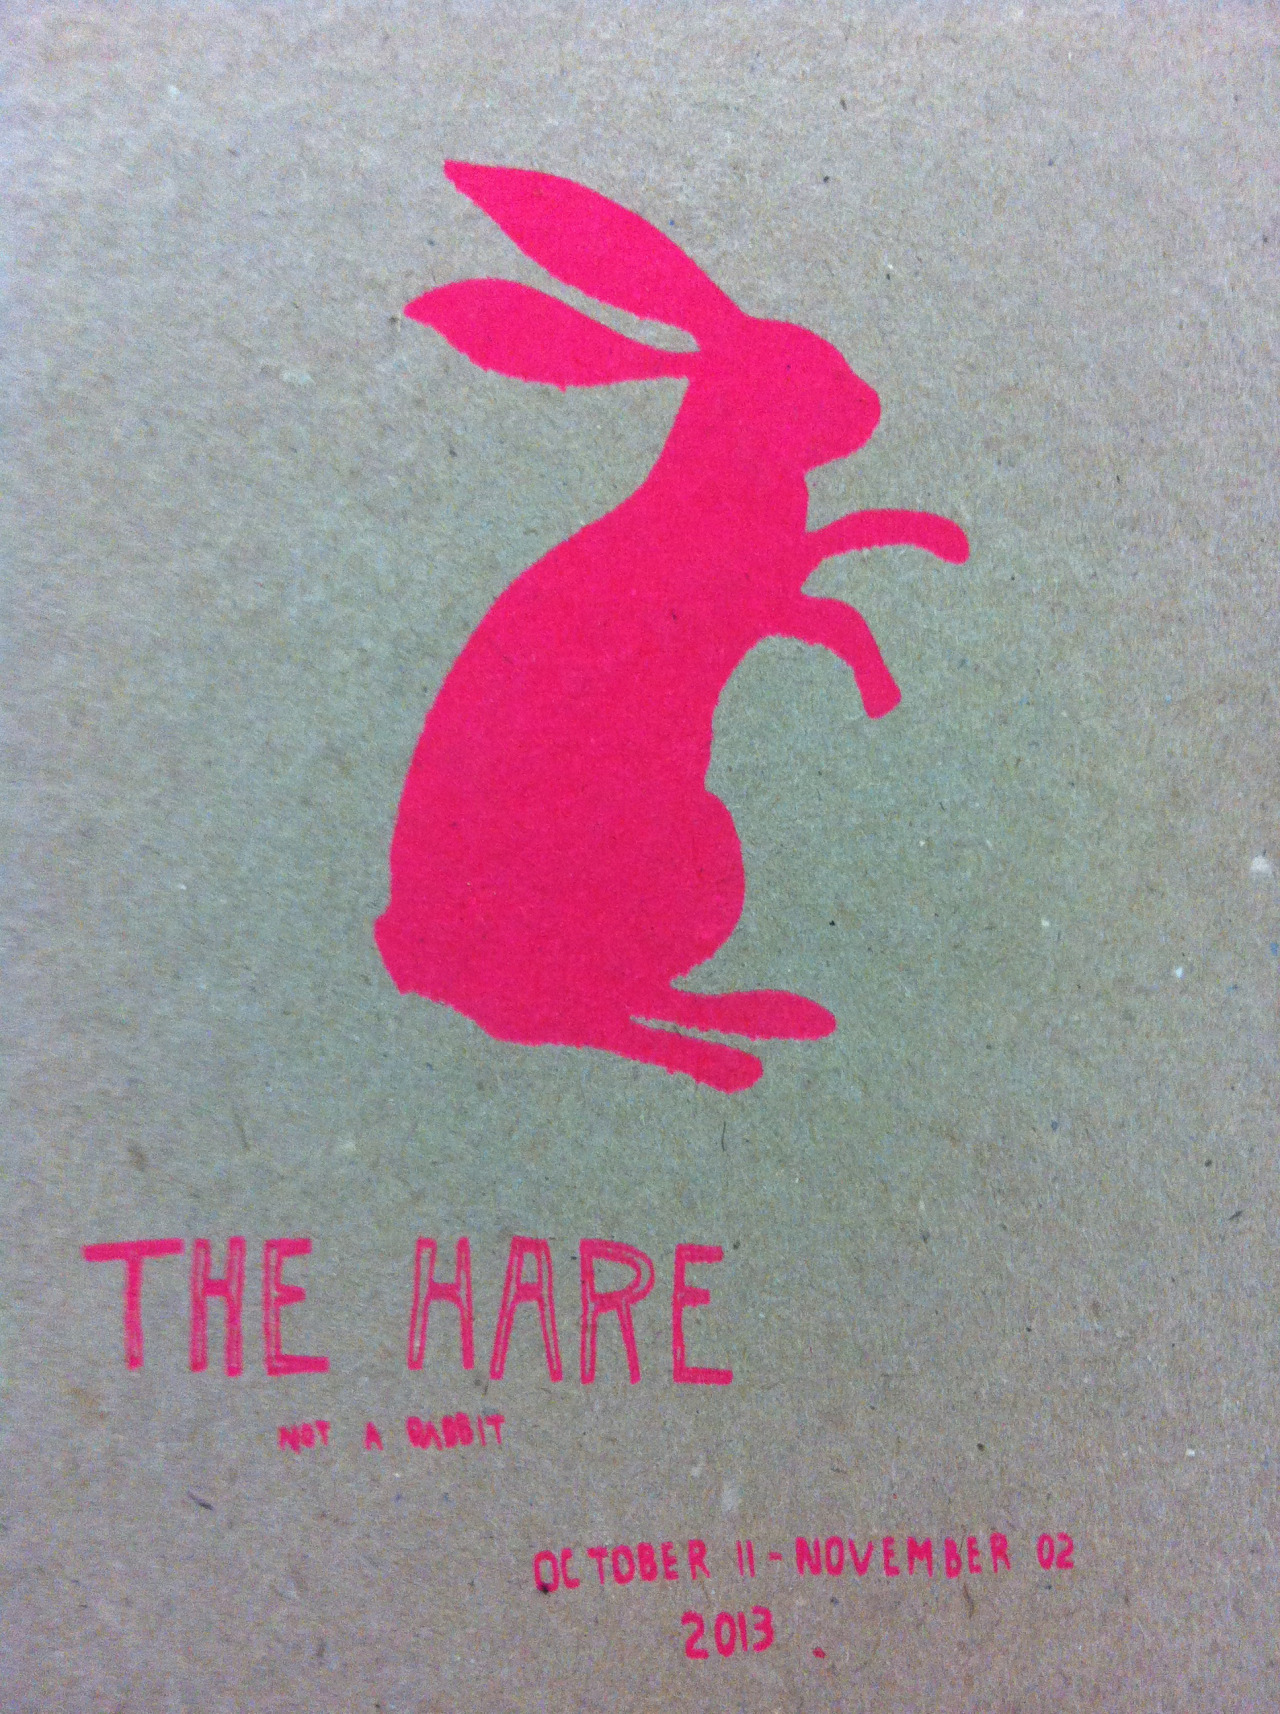 The Hare, not a rabbit. I happened  upon this little pop up in Temple Bar today. Its a project by artist Fiona Hallinan and chef Katie Saunderson and it takes the form of a temporary kitchen in the gallery of Temple Bar Gallery and Studios. Its open Tuesday to Saturday 11:00 to 15:00 and is serving daily vegetarian specials and a lovely selection of drinks.